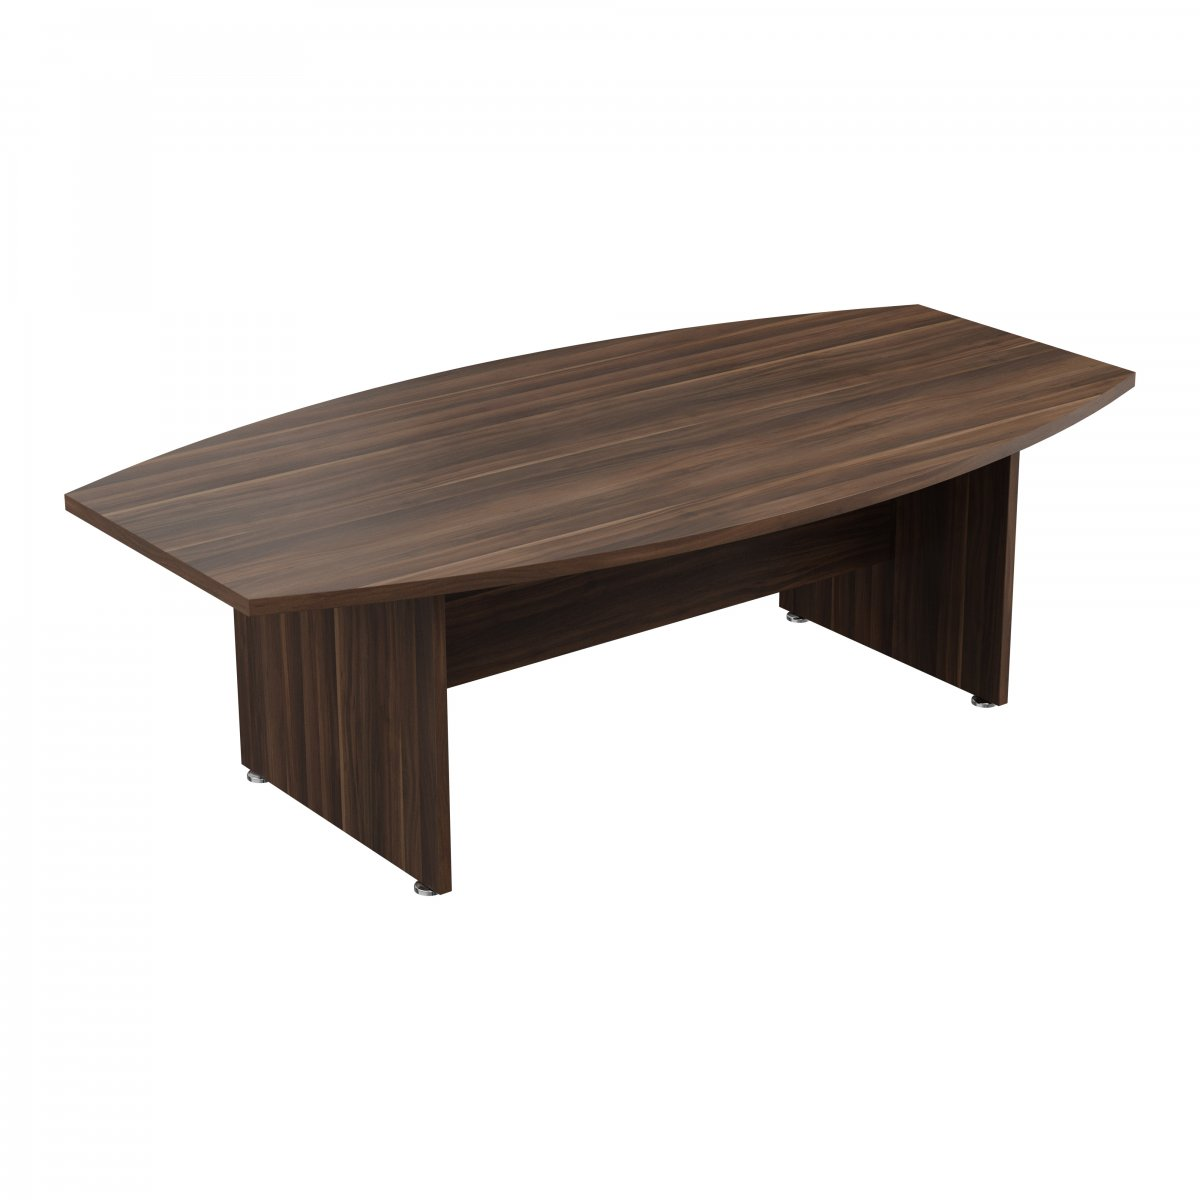 Regent Executive 240 Boardroom Table - Dark Walnut